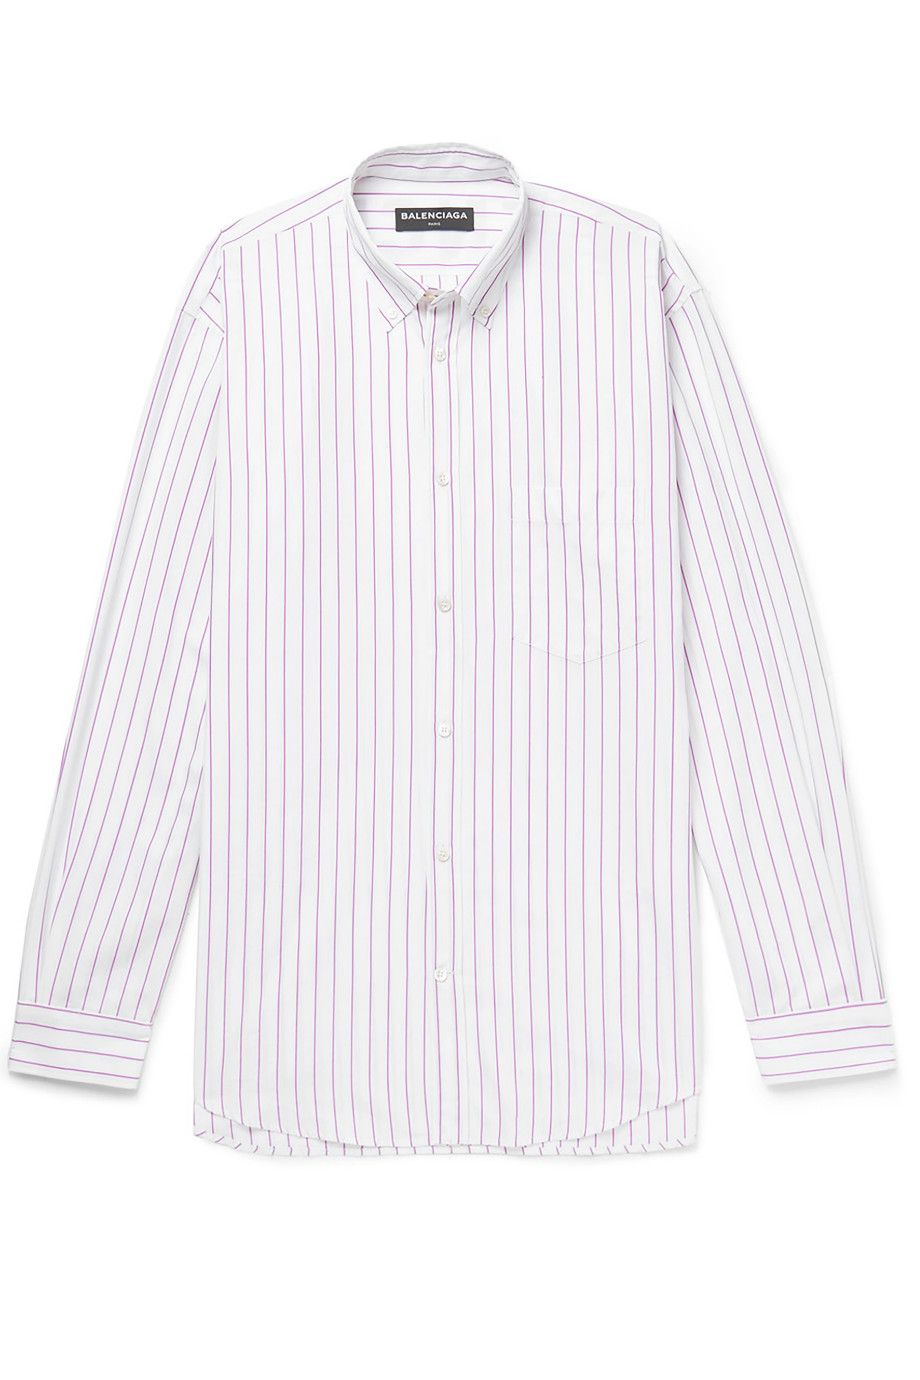 MR PORTER X BALENCIAGA Oversized Button-Down Collar Striped Cotton-Poplin Shirt Pink